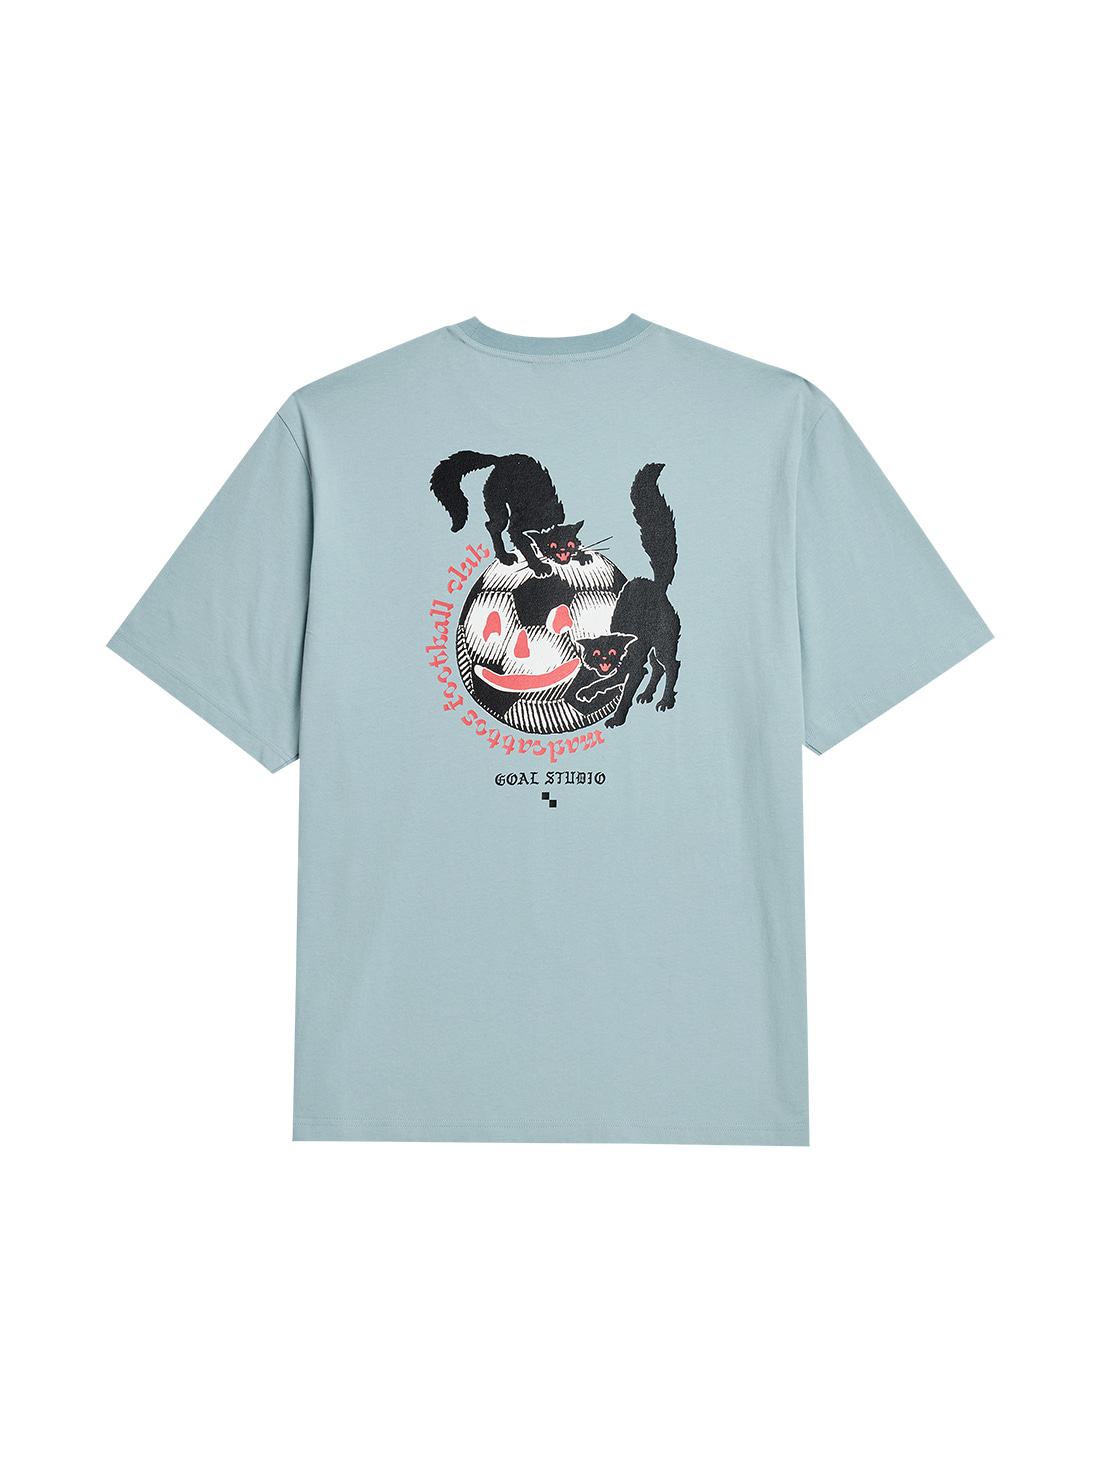 MC BALL GRAPHIC TEE - LIGHT BLUE